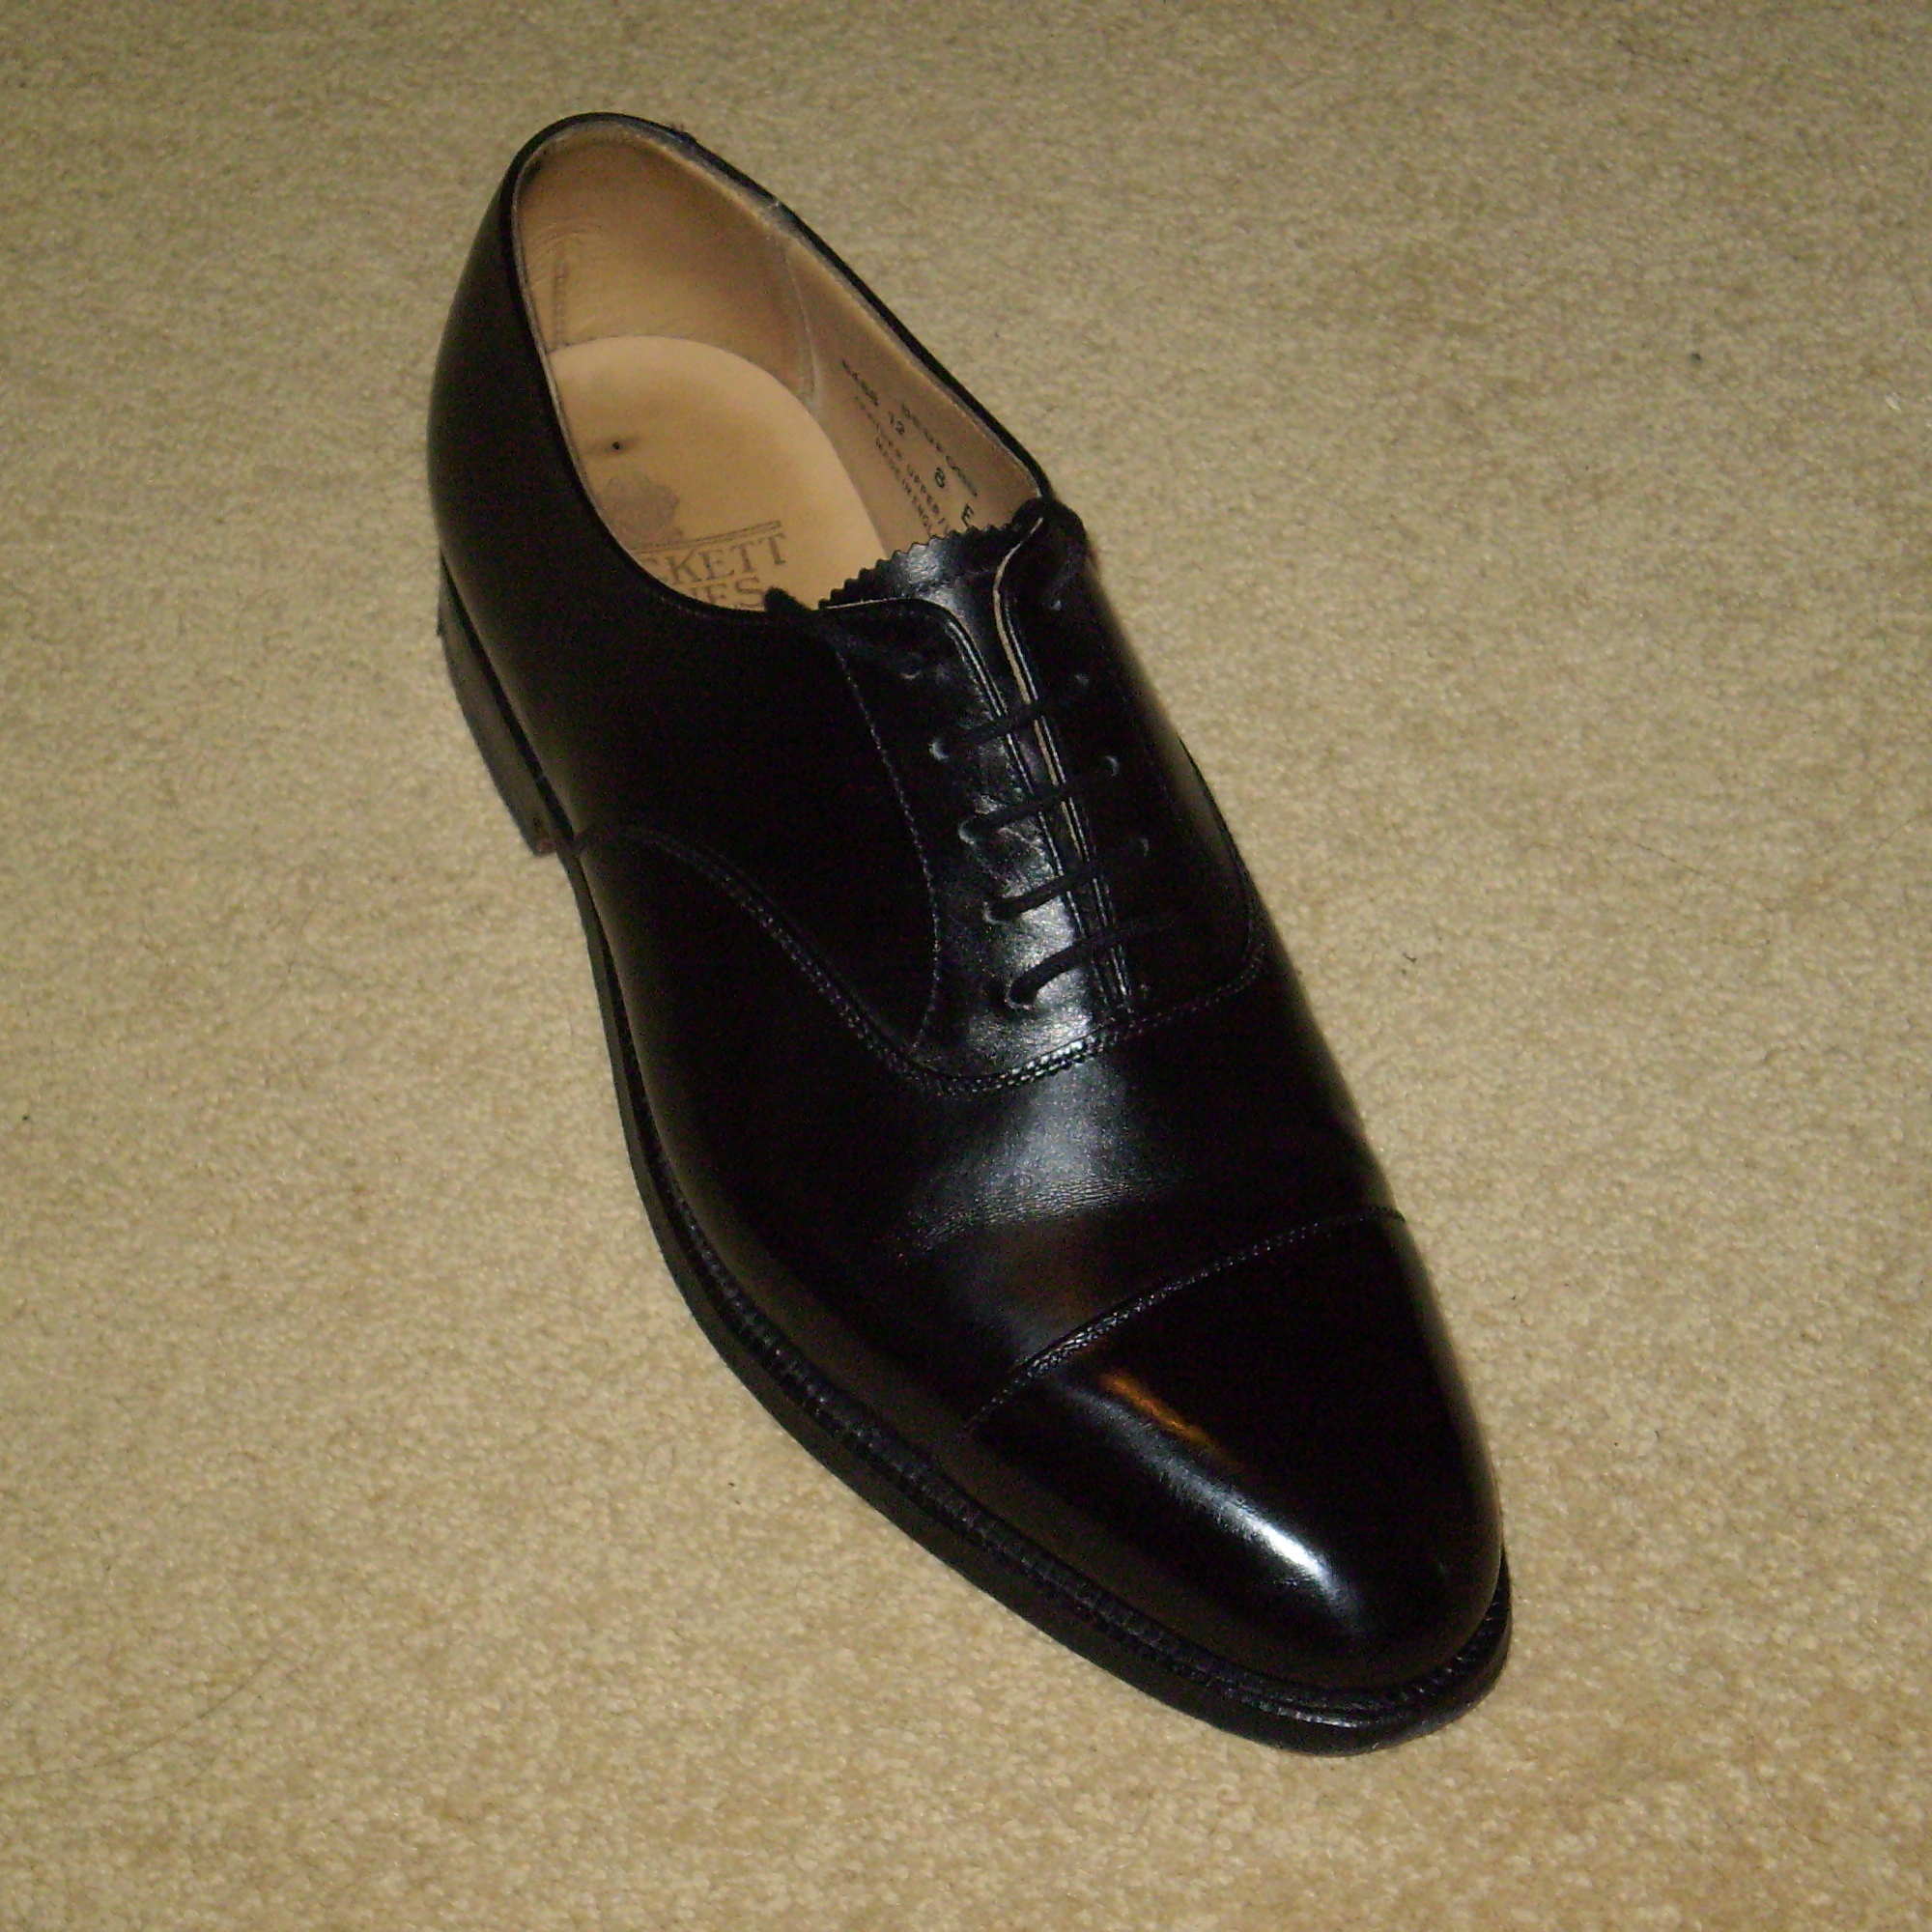 198cbfa91799 Oxford shoe - Wikipedia